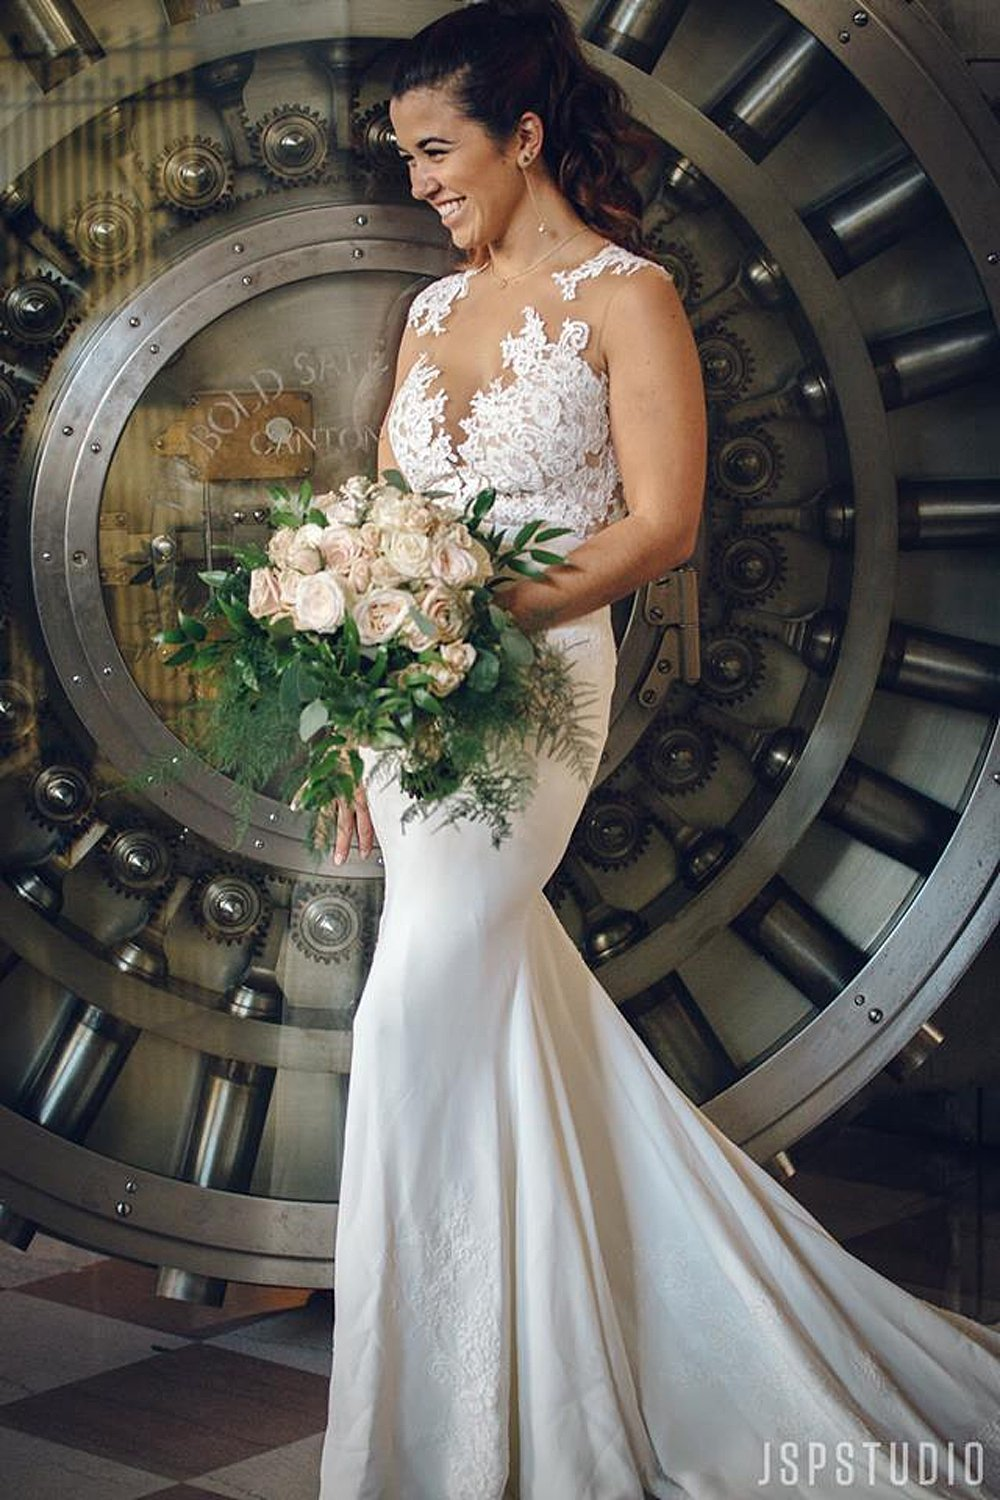 Beautiful Bride in Lace Gown in front of the infamous vault door at the Historic Alfred I Dupont Building